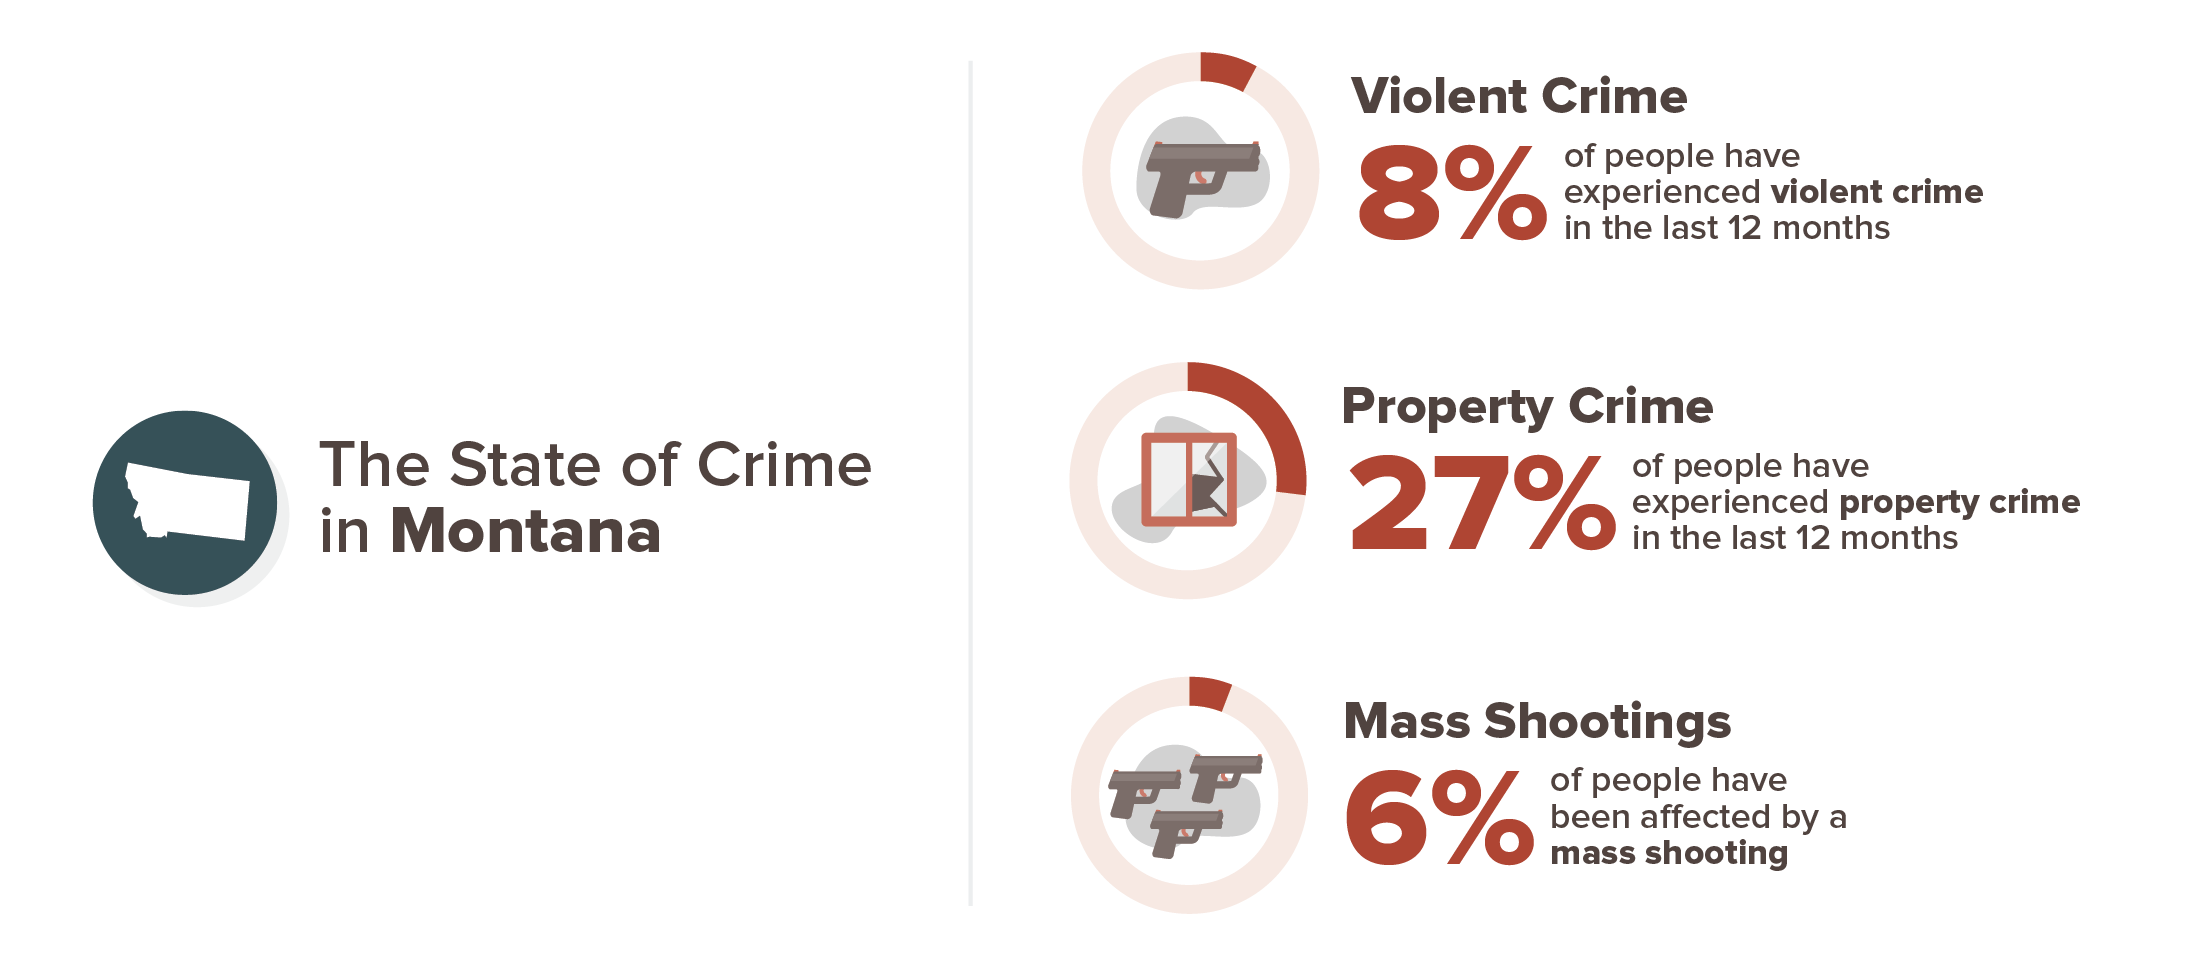 Montana crime experience infographic; 8& violent crime, 27% property crime, 6% mass shooting